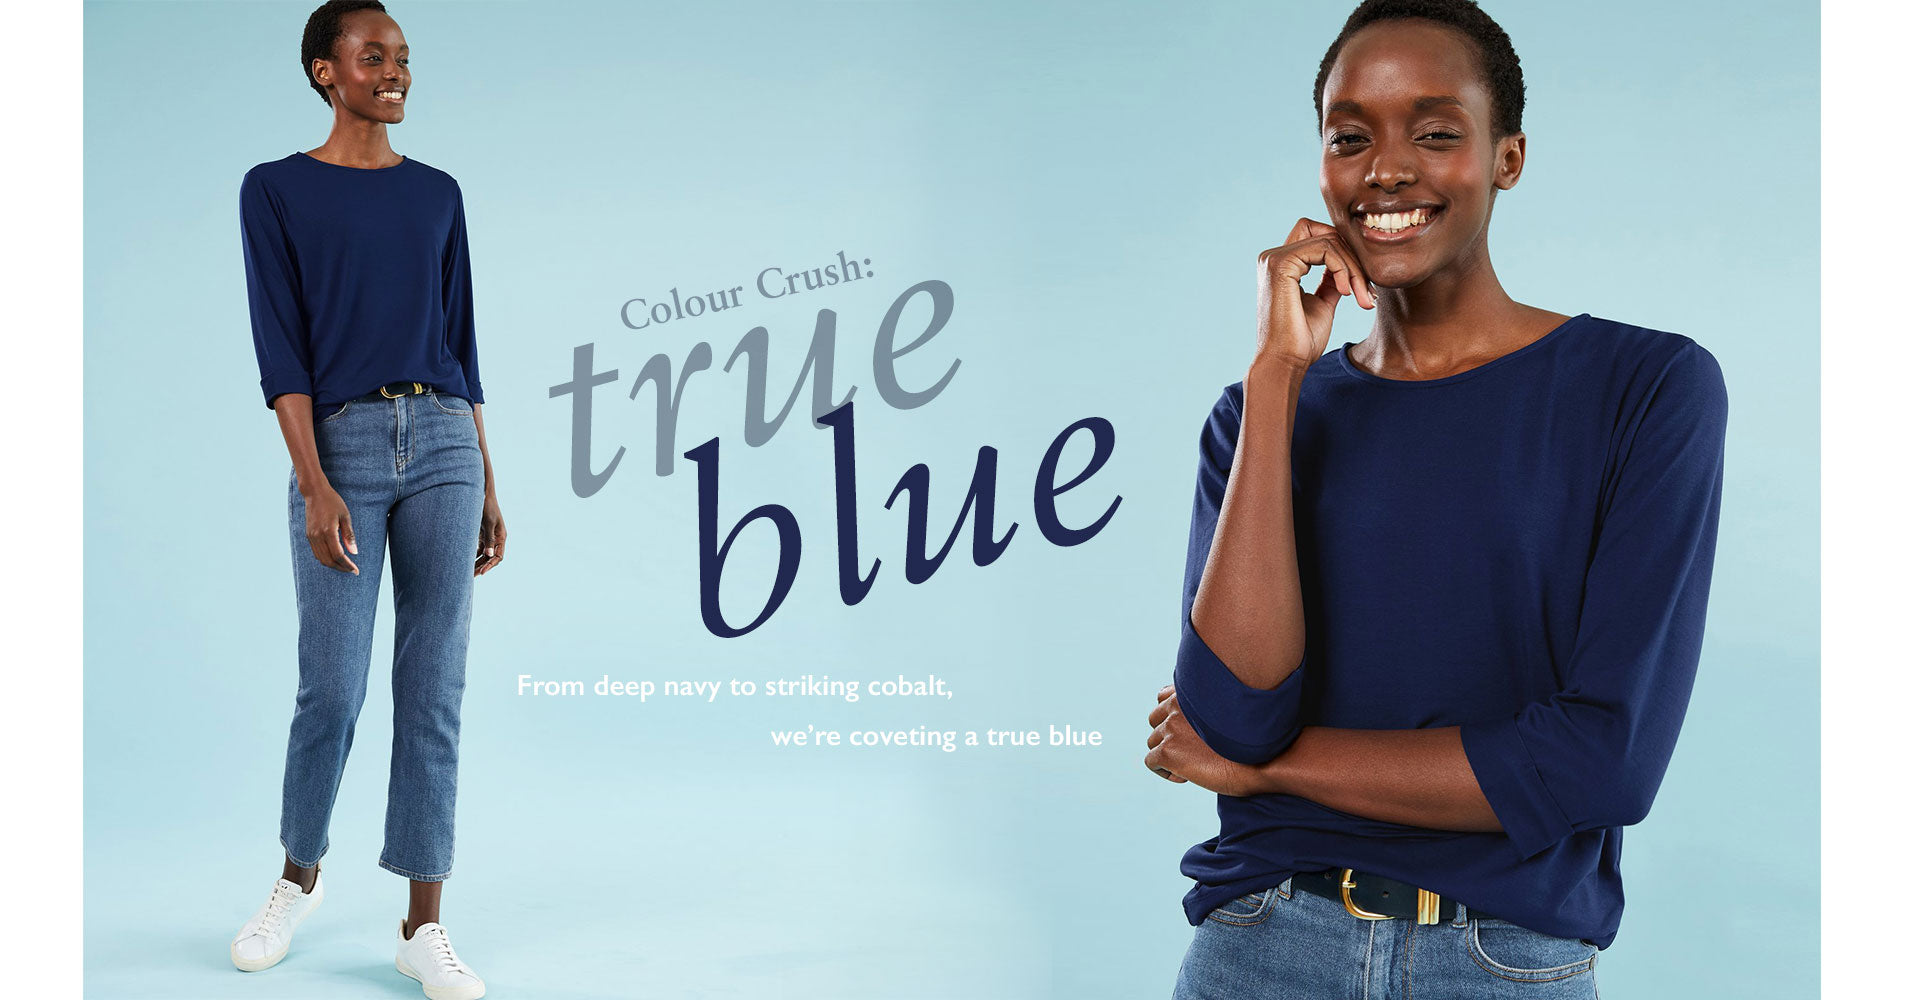 Colour Crush: True Blue